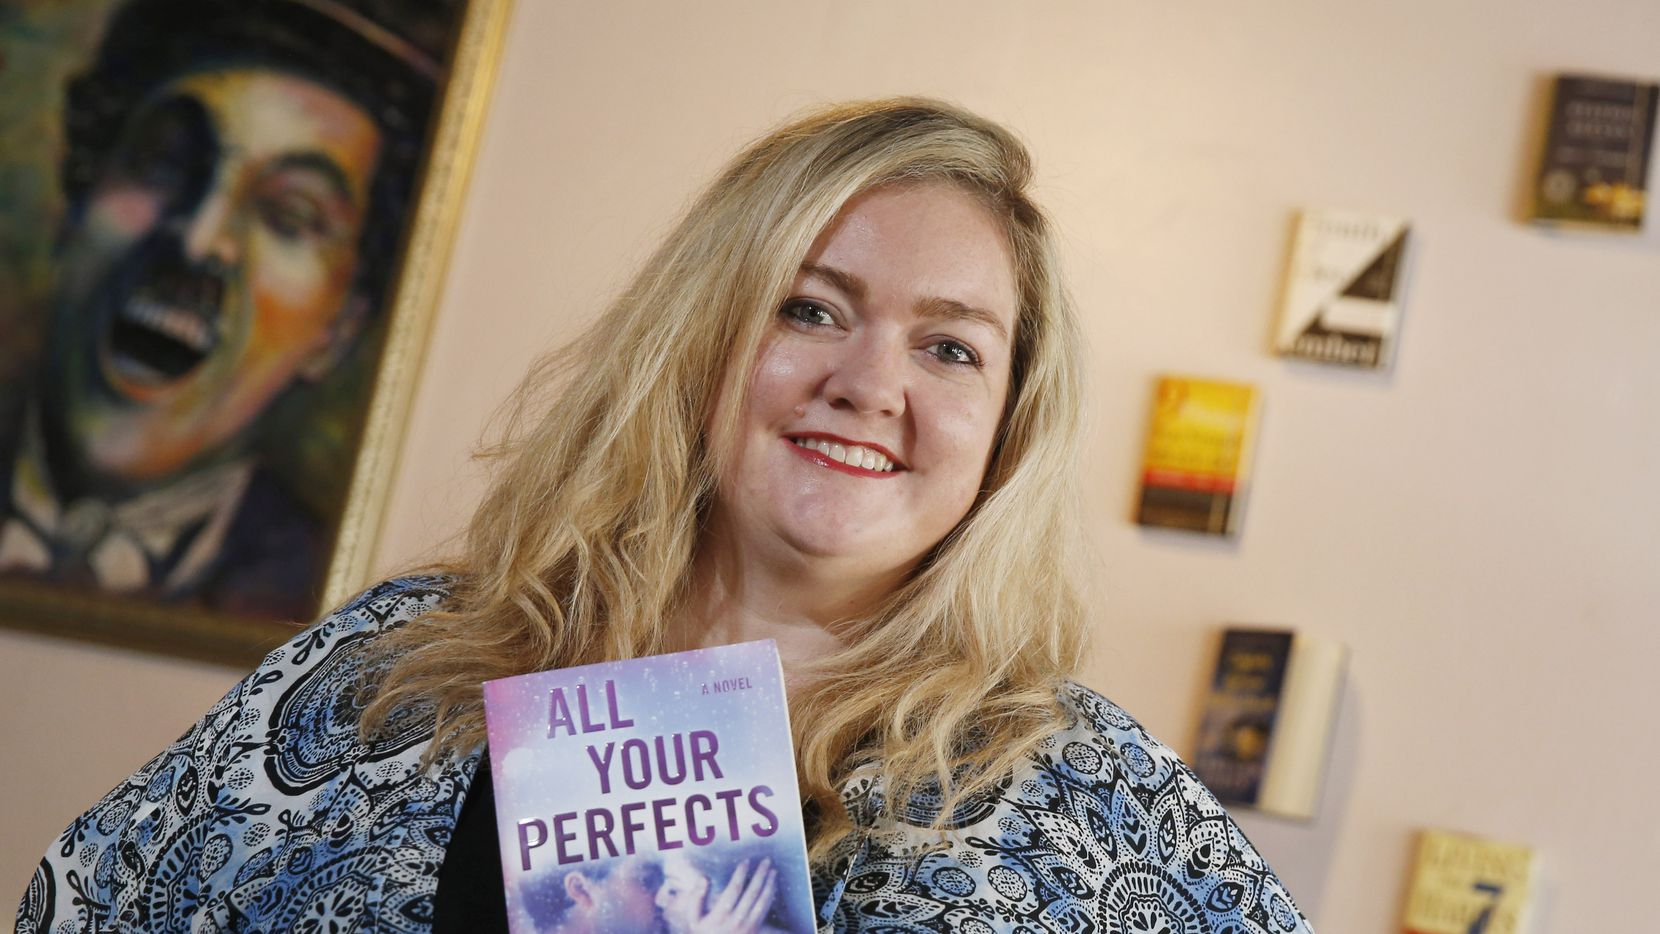 Colleen Hoover discusses her astonishing, accidental literary ...